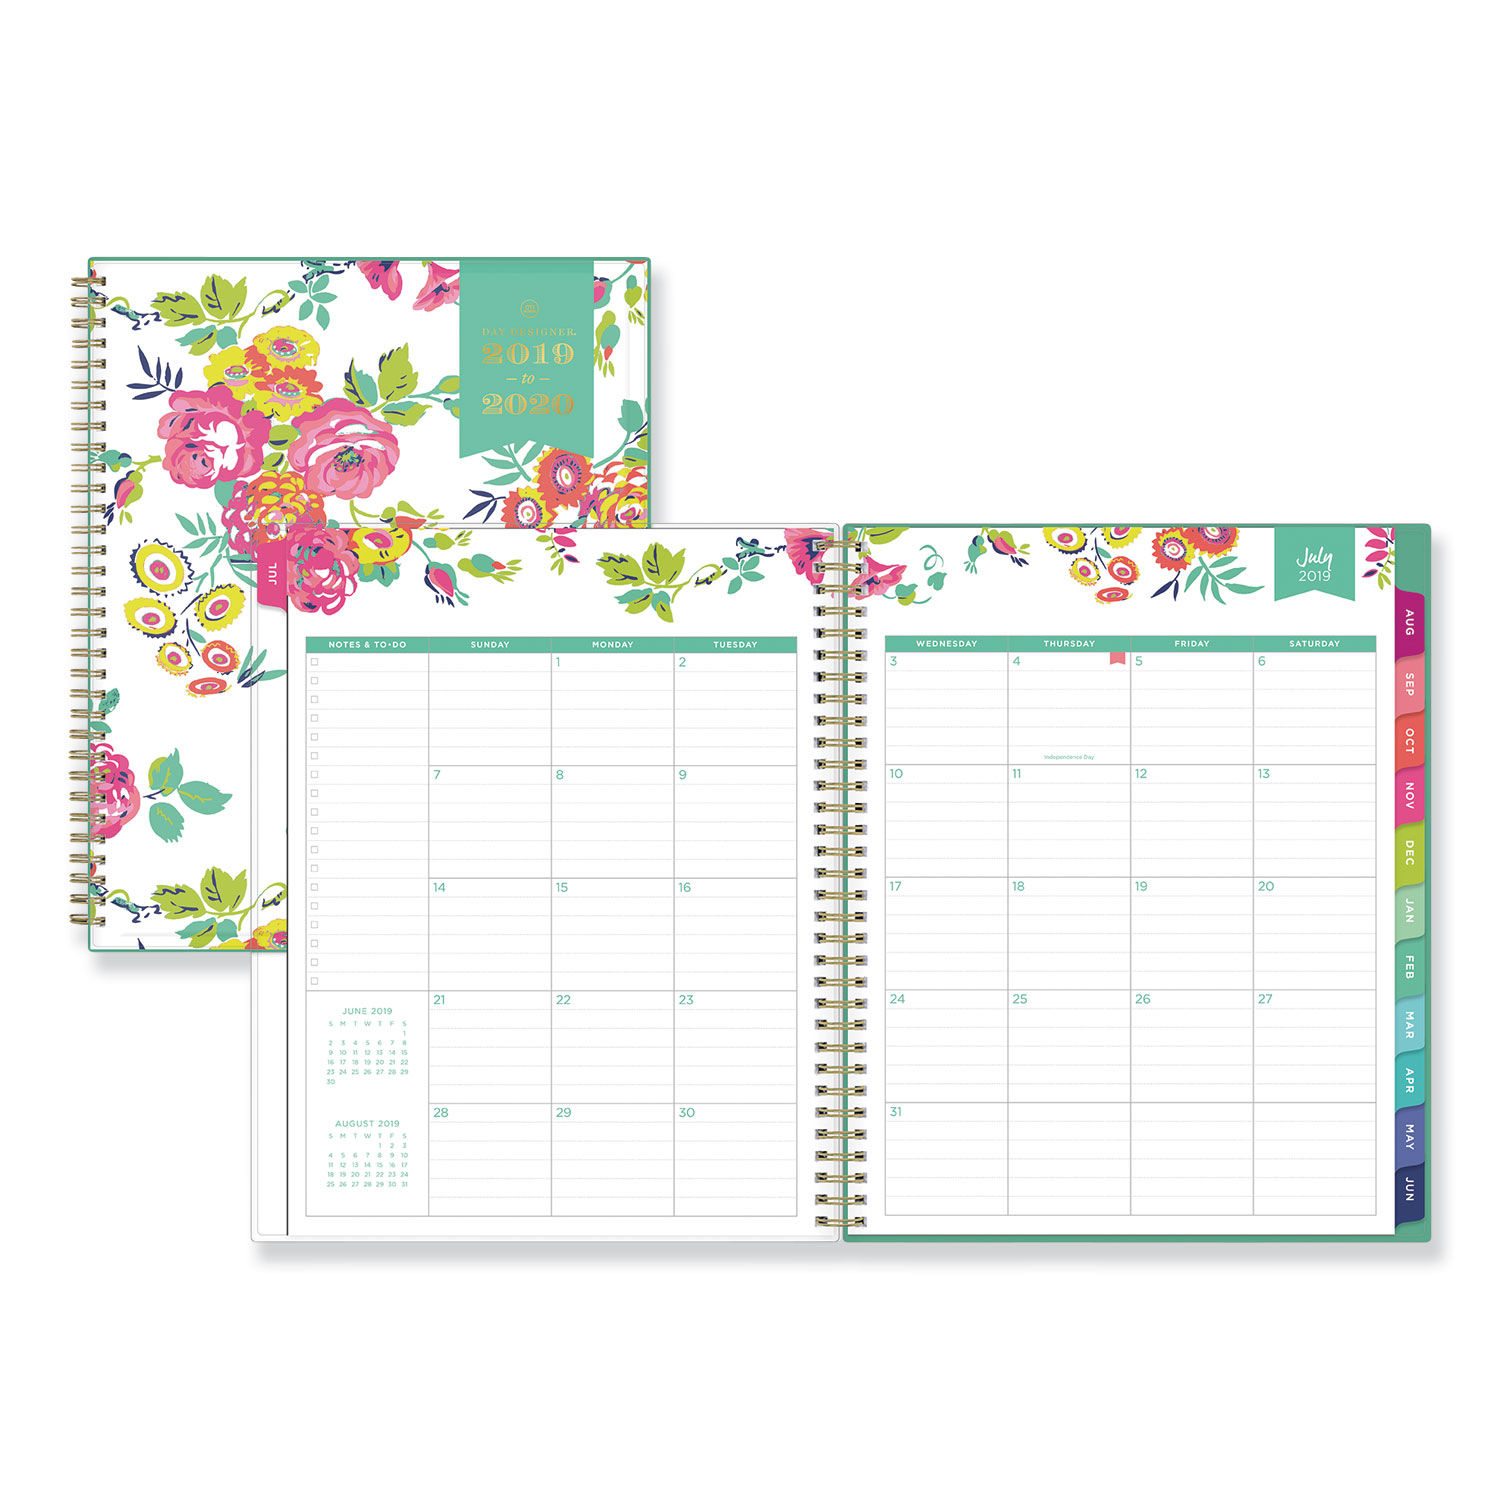 photograph about Day Designer Planners named Working day Designer Instructional Yr CYO Weekly/Regular Planner, 11 x 8 1/2, White/Floral, 2019-2020